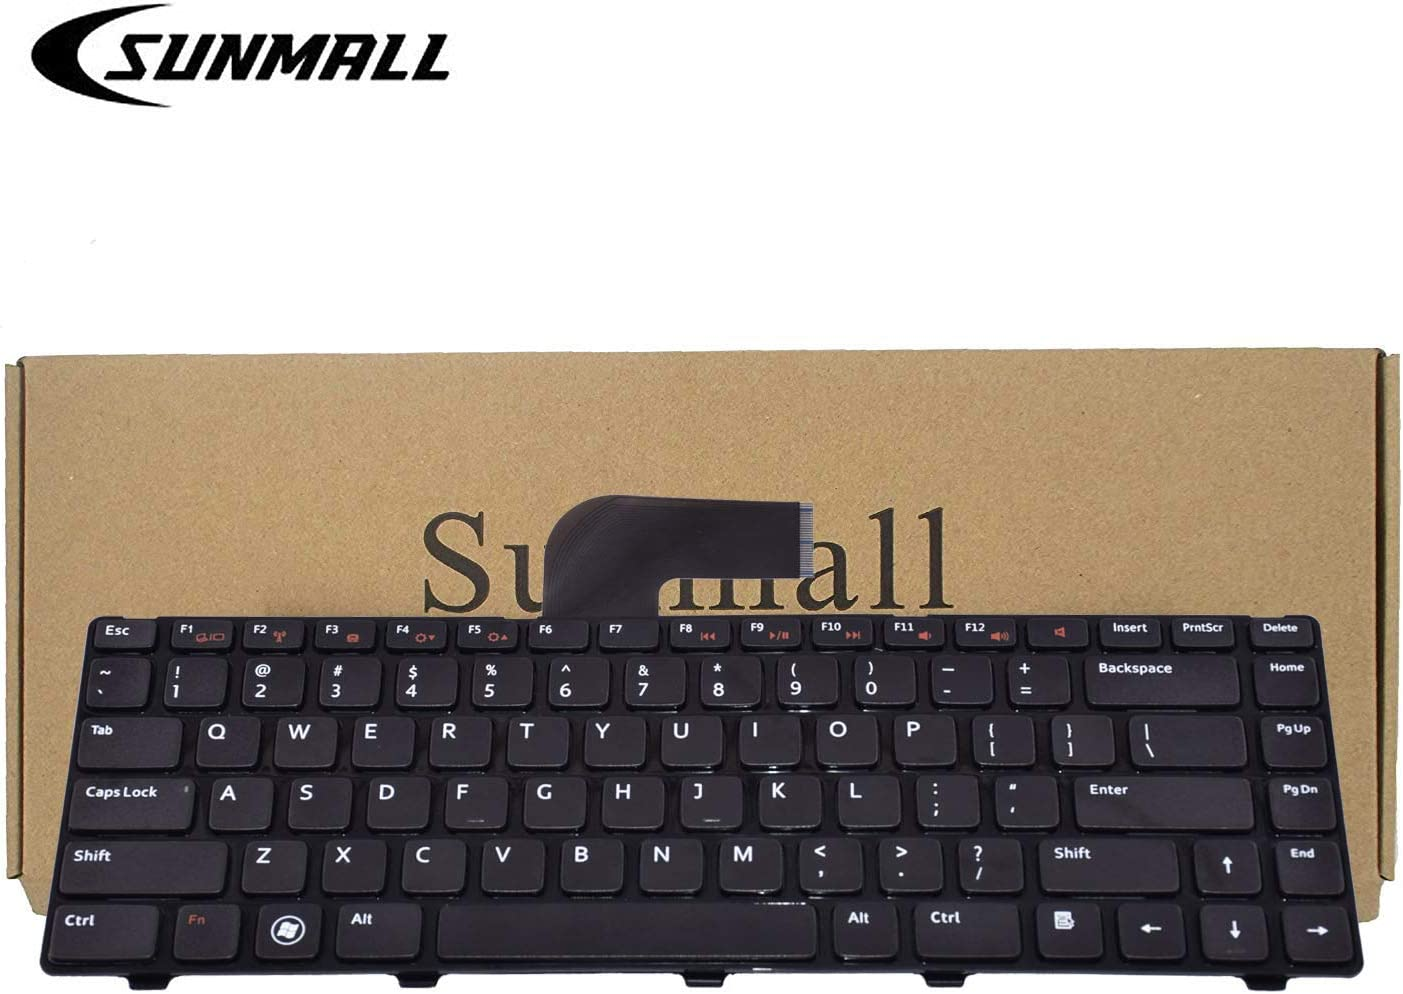 SUNMALL Keyboard Replacement with Frame Compatible with Dell Inspiron 14R N4110 N4120 M4110 N4050 N5040 N5050 M5040 M5050, VOSTRO 1440 1445 1450 1550 2420 2520 3350 3450 3460 3550 3555 3560